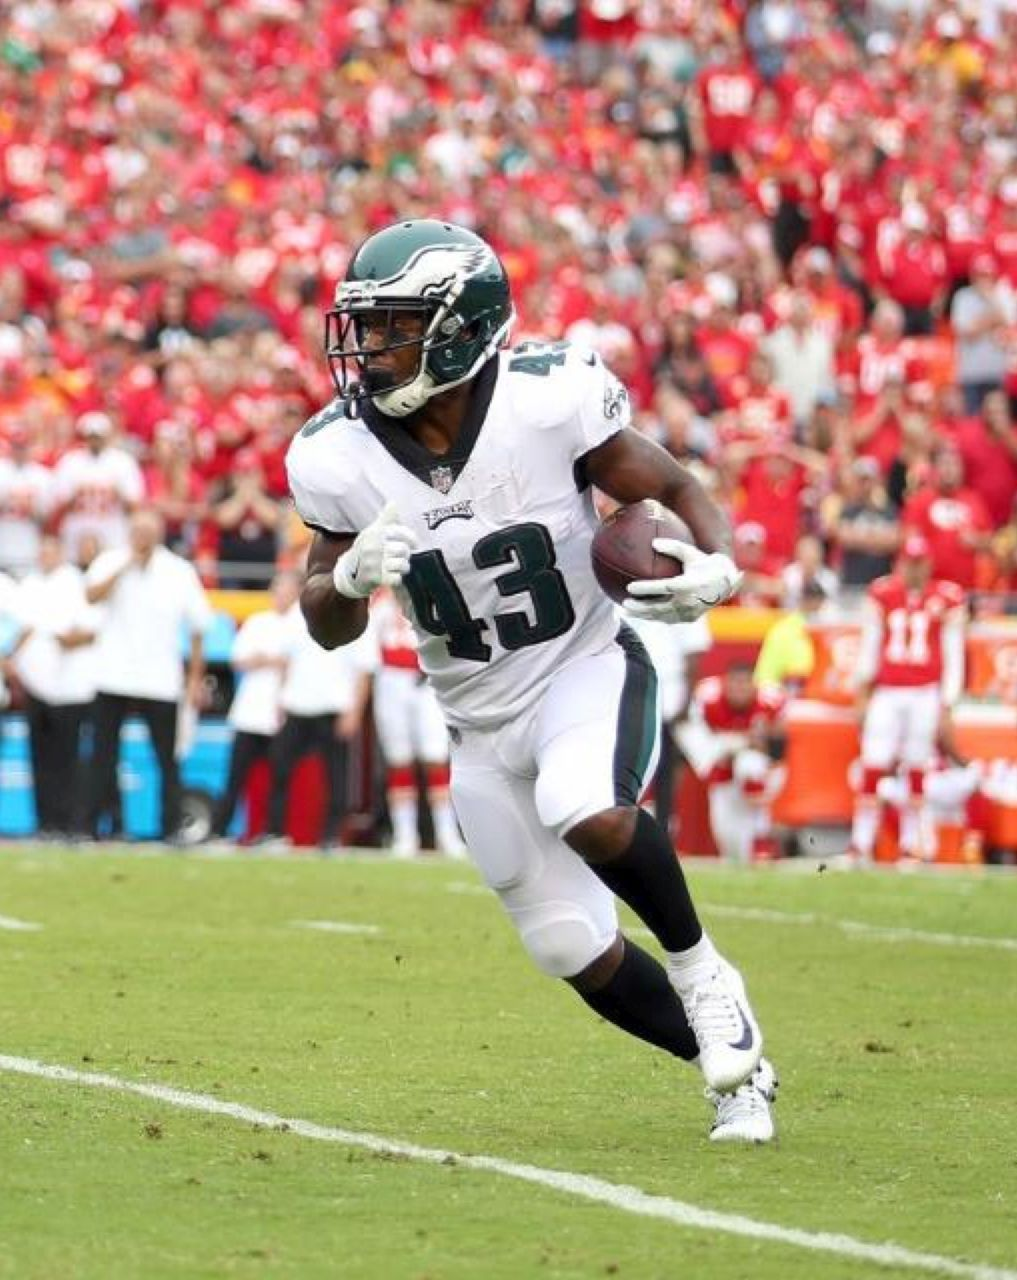 Eagles RB Darren Sproles Set For Surgery on Broken Arm